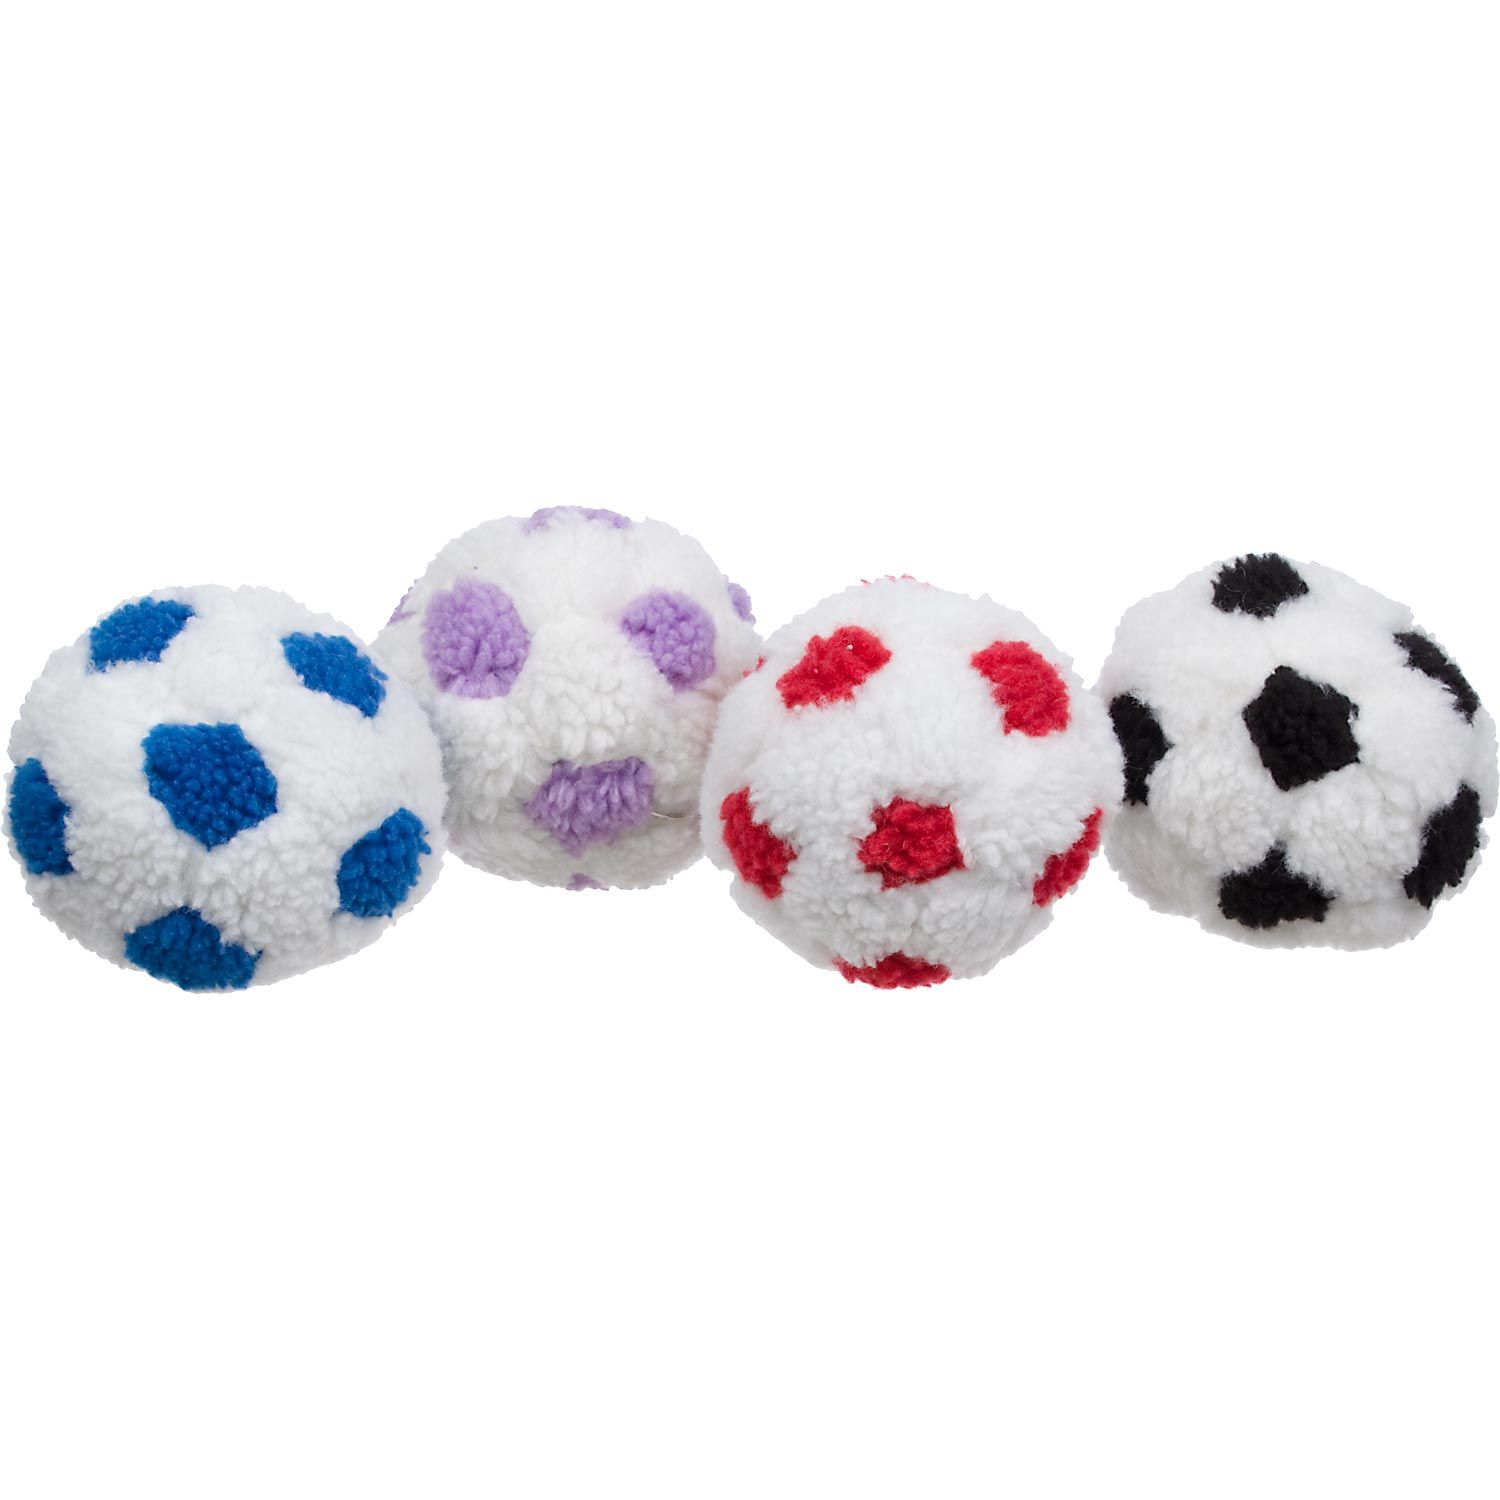 Petco Berber Soccer Ball Plush Dog Toy With Images Plush Dog